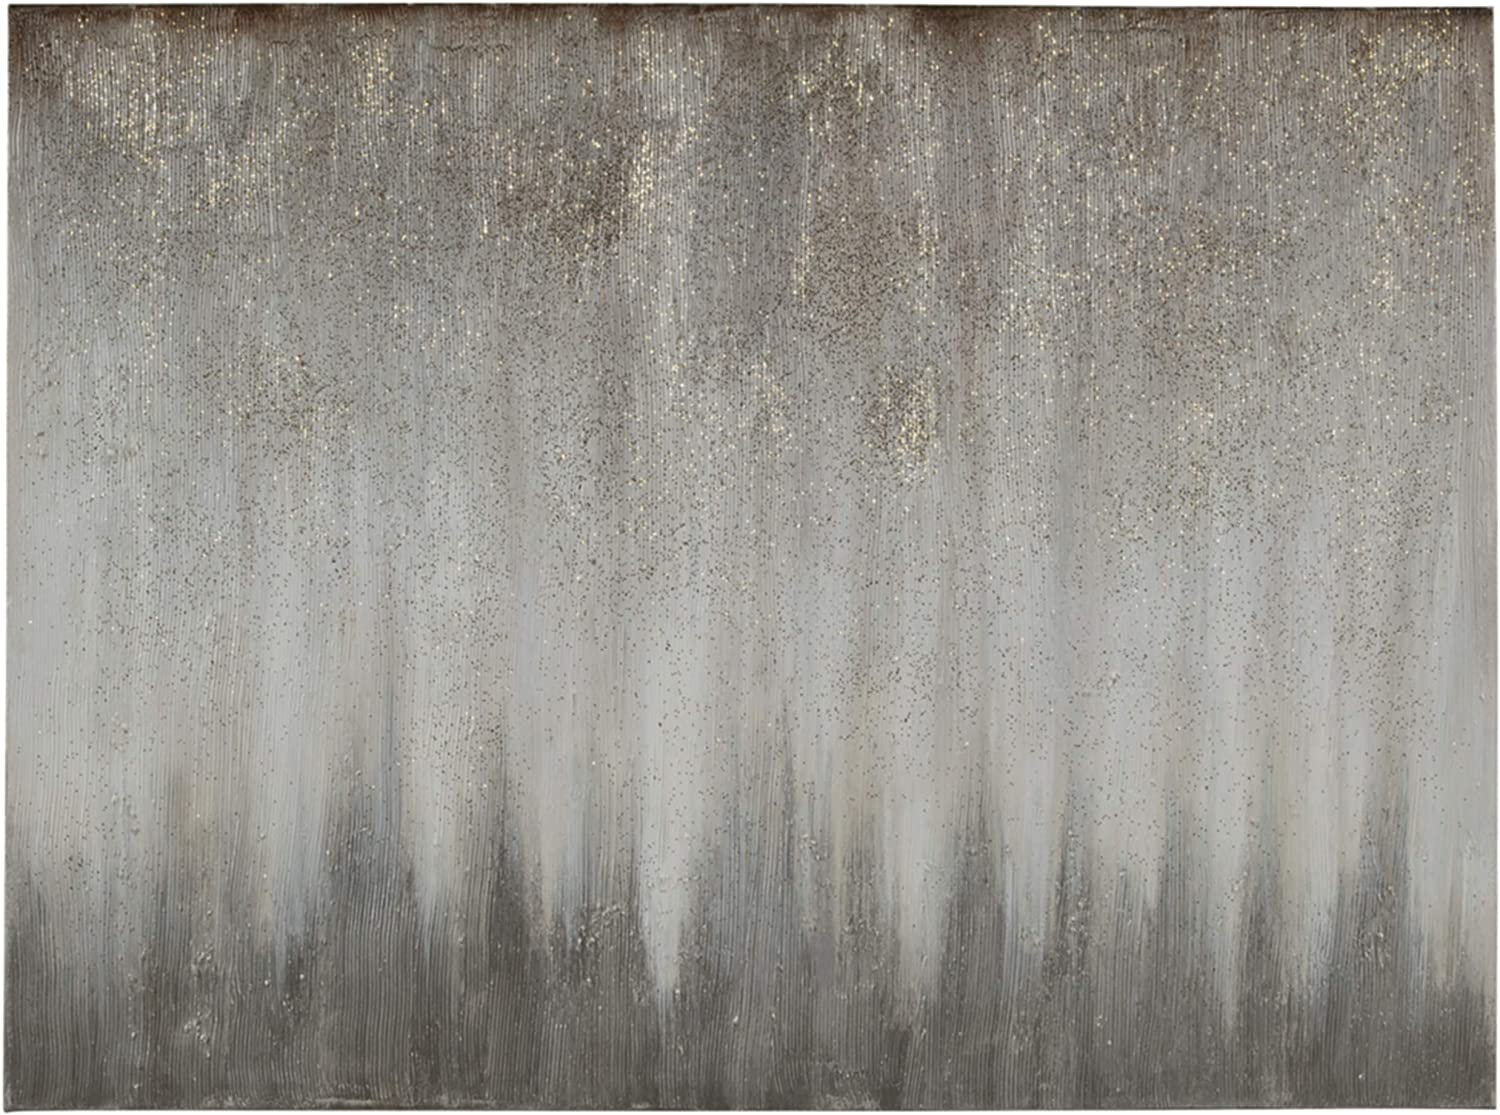 Signature Design by Ashley Paytah Glitter Gallery Wrapped Canvas 47 x 35 inches, Silver